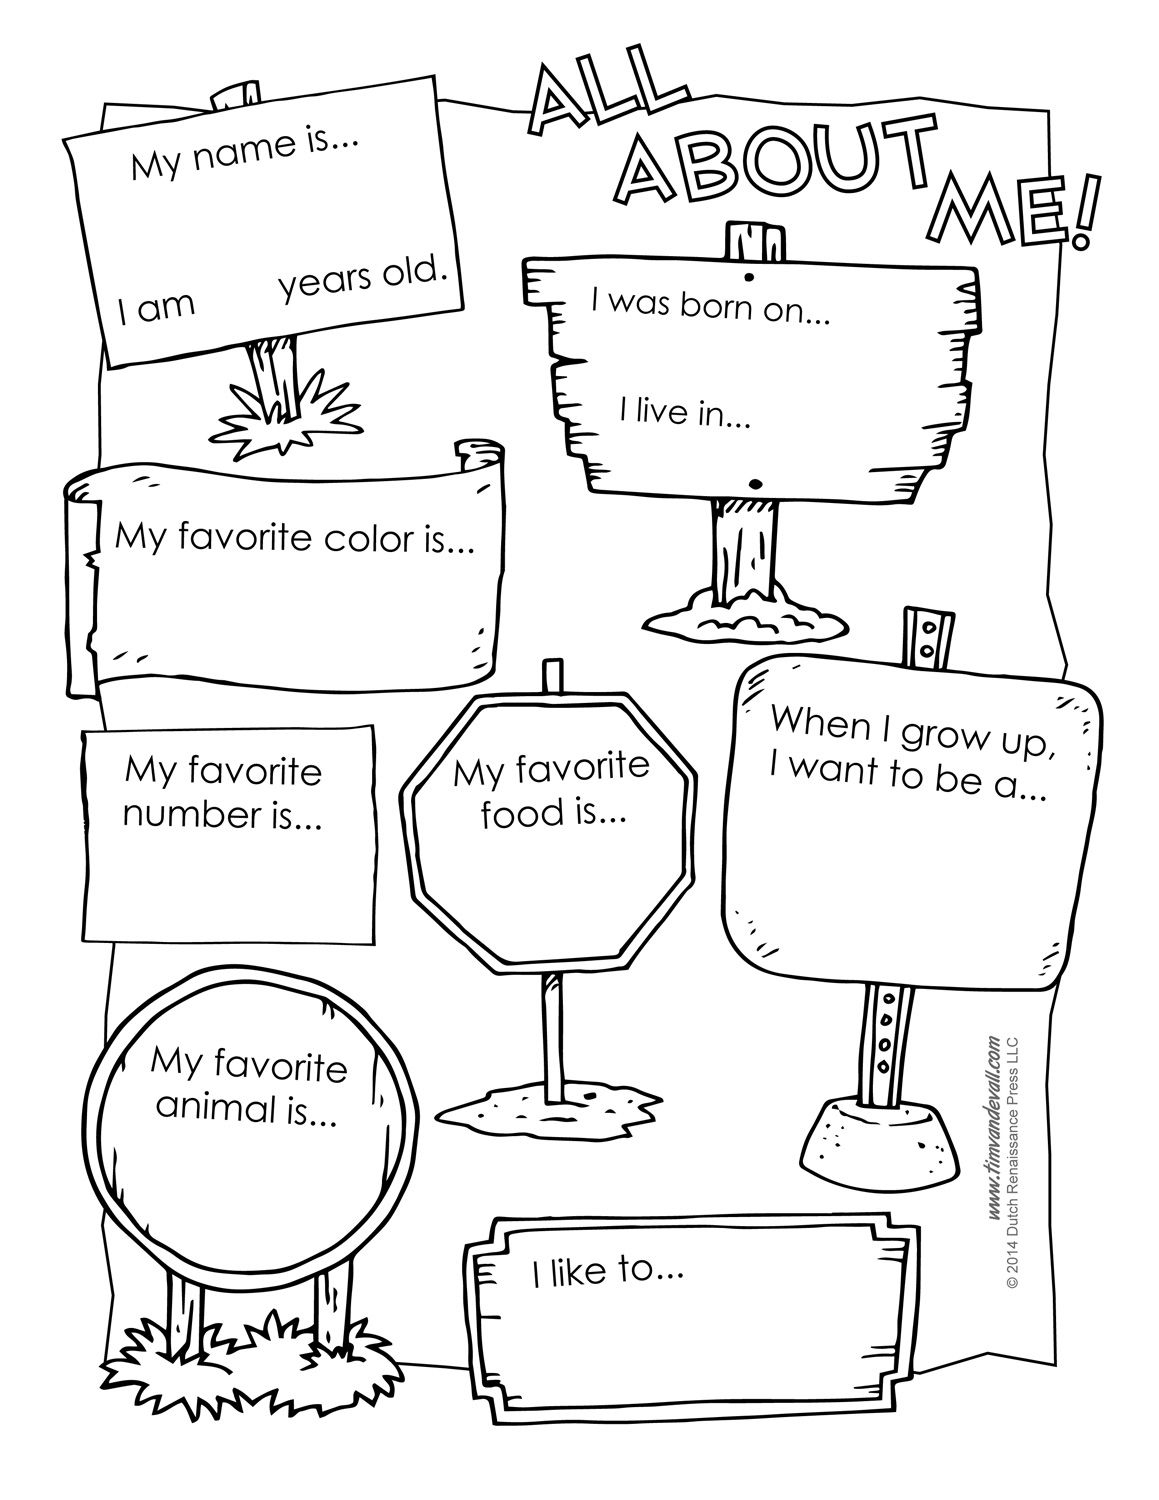 All About Me Preschool Template | 6 Best Images Of All About Me - Free Printable All About Me Poster